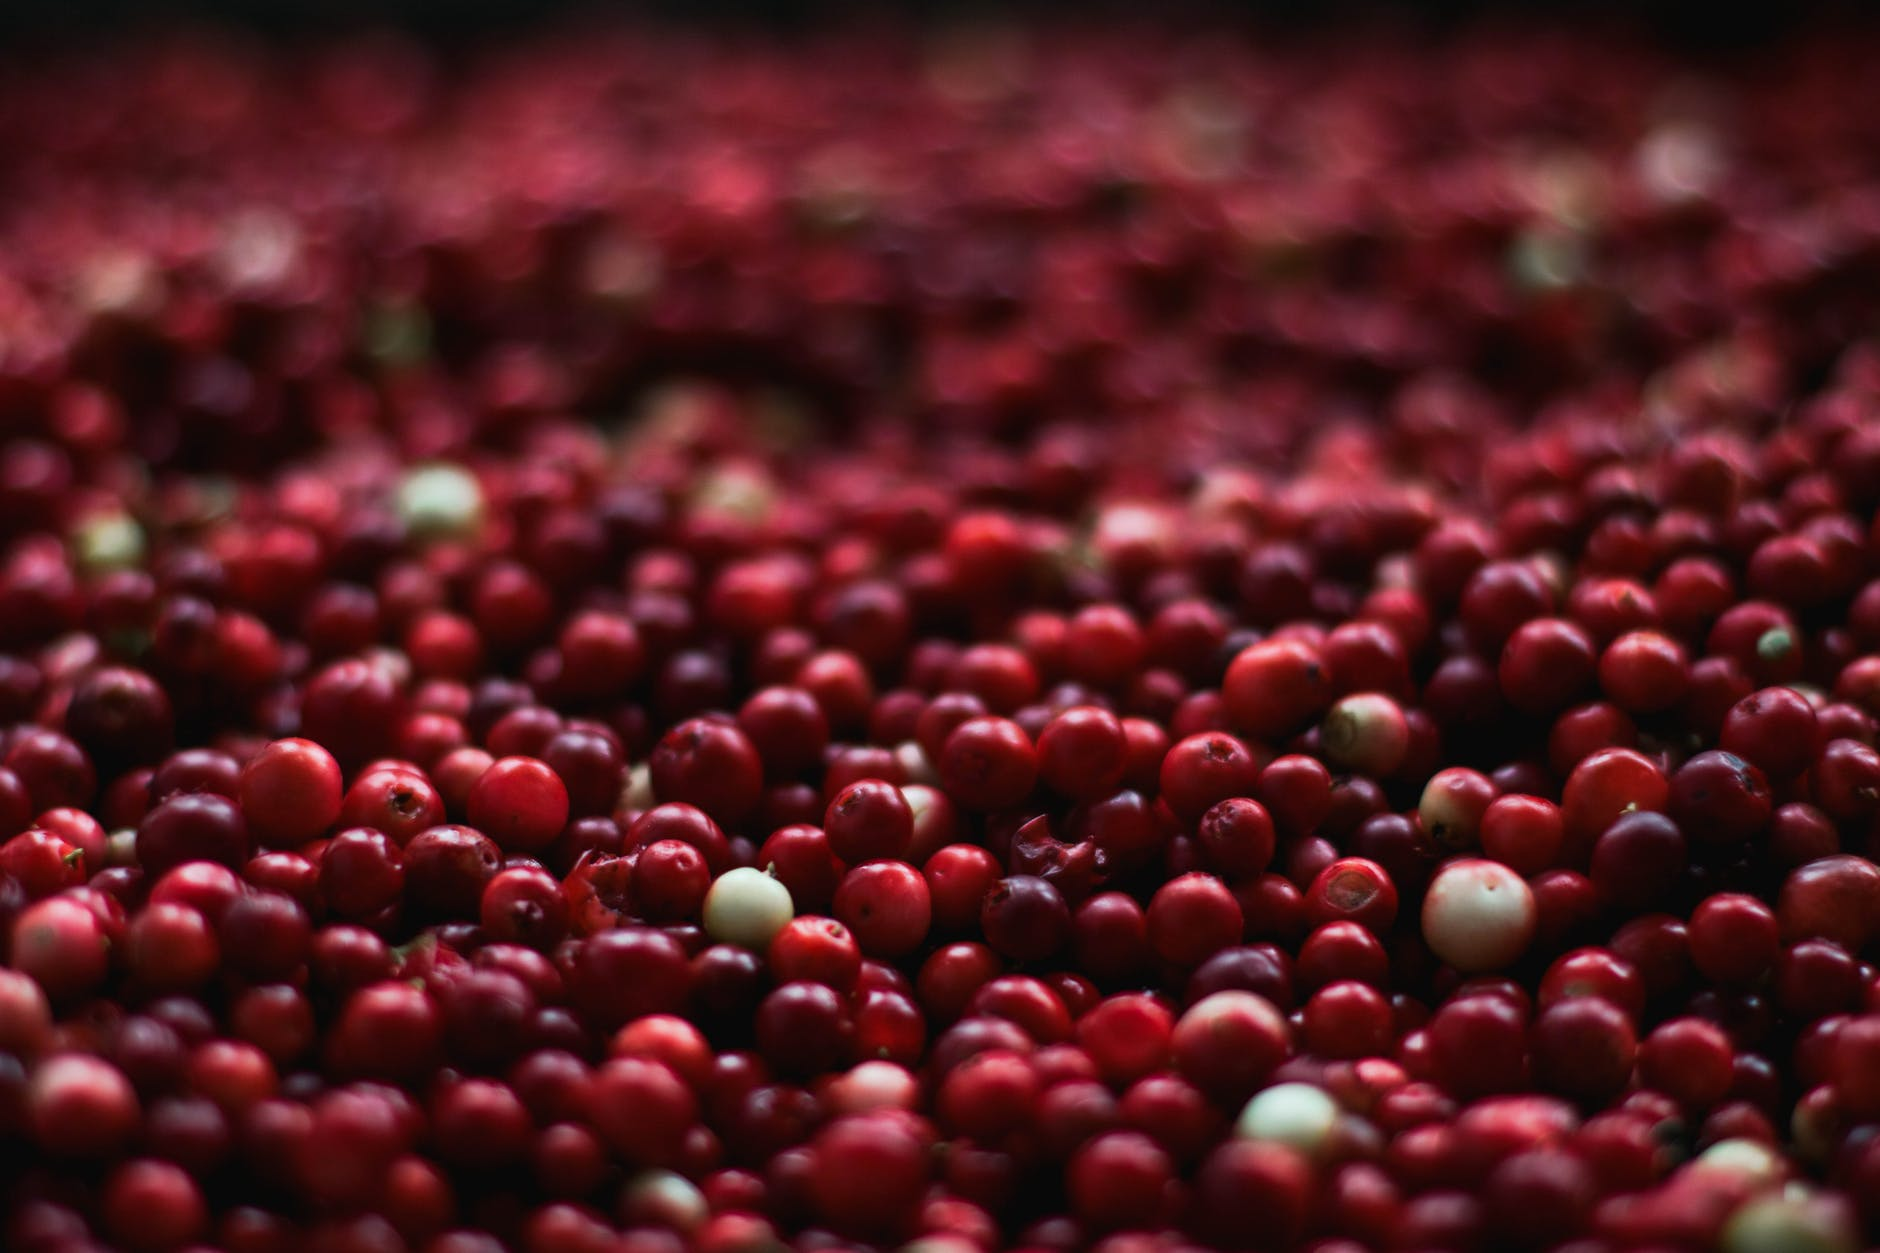 a large amount of cranberries